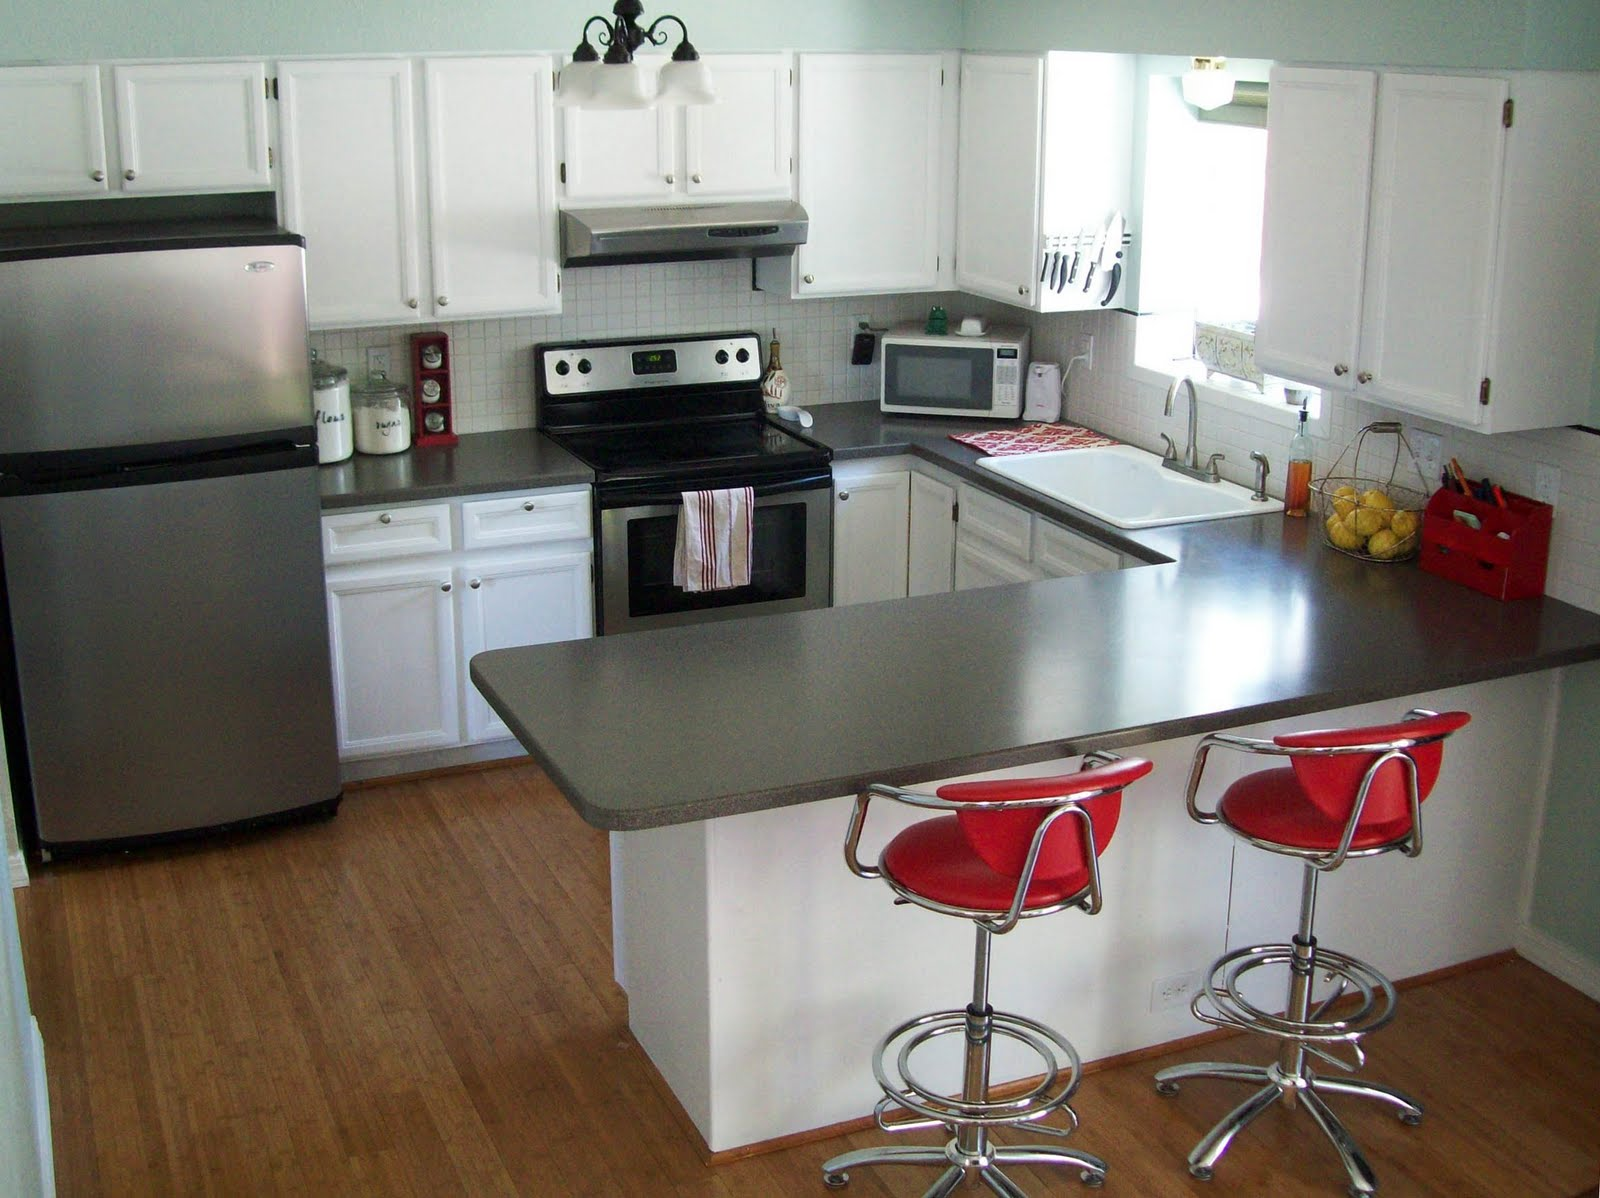 Stainless steel knobs for kitchen cabinets Photo - 6